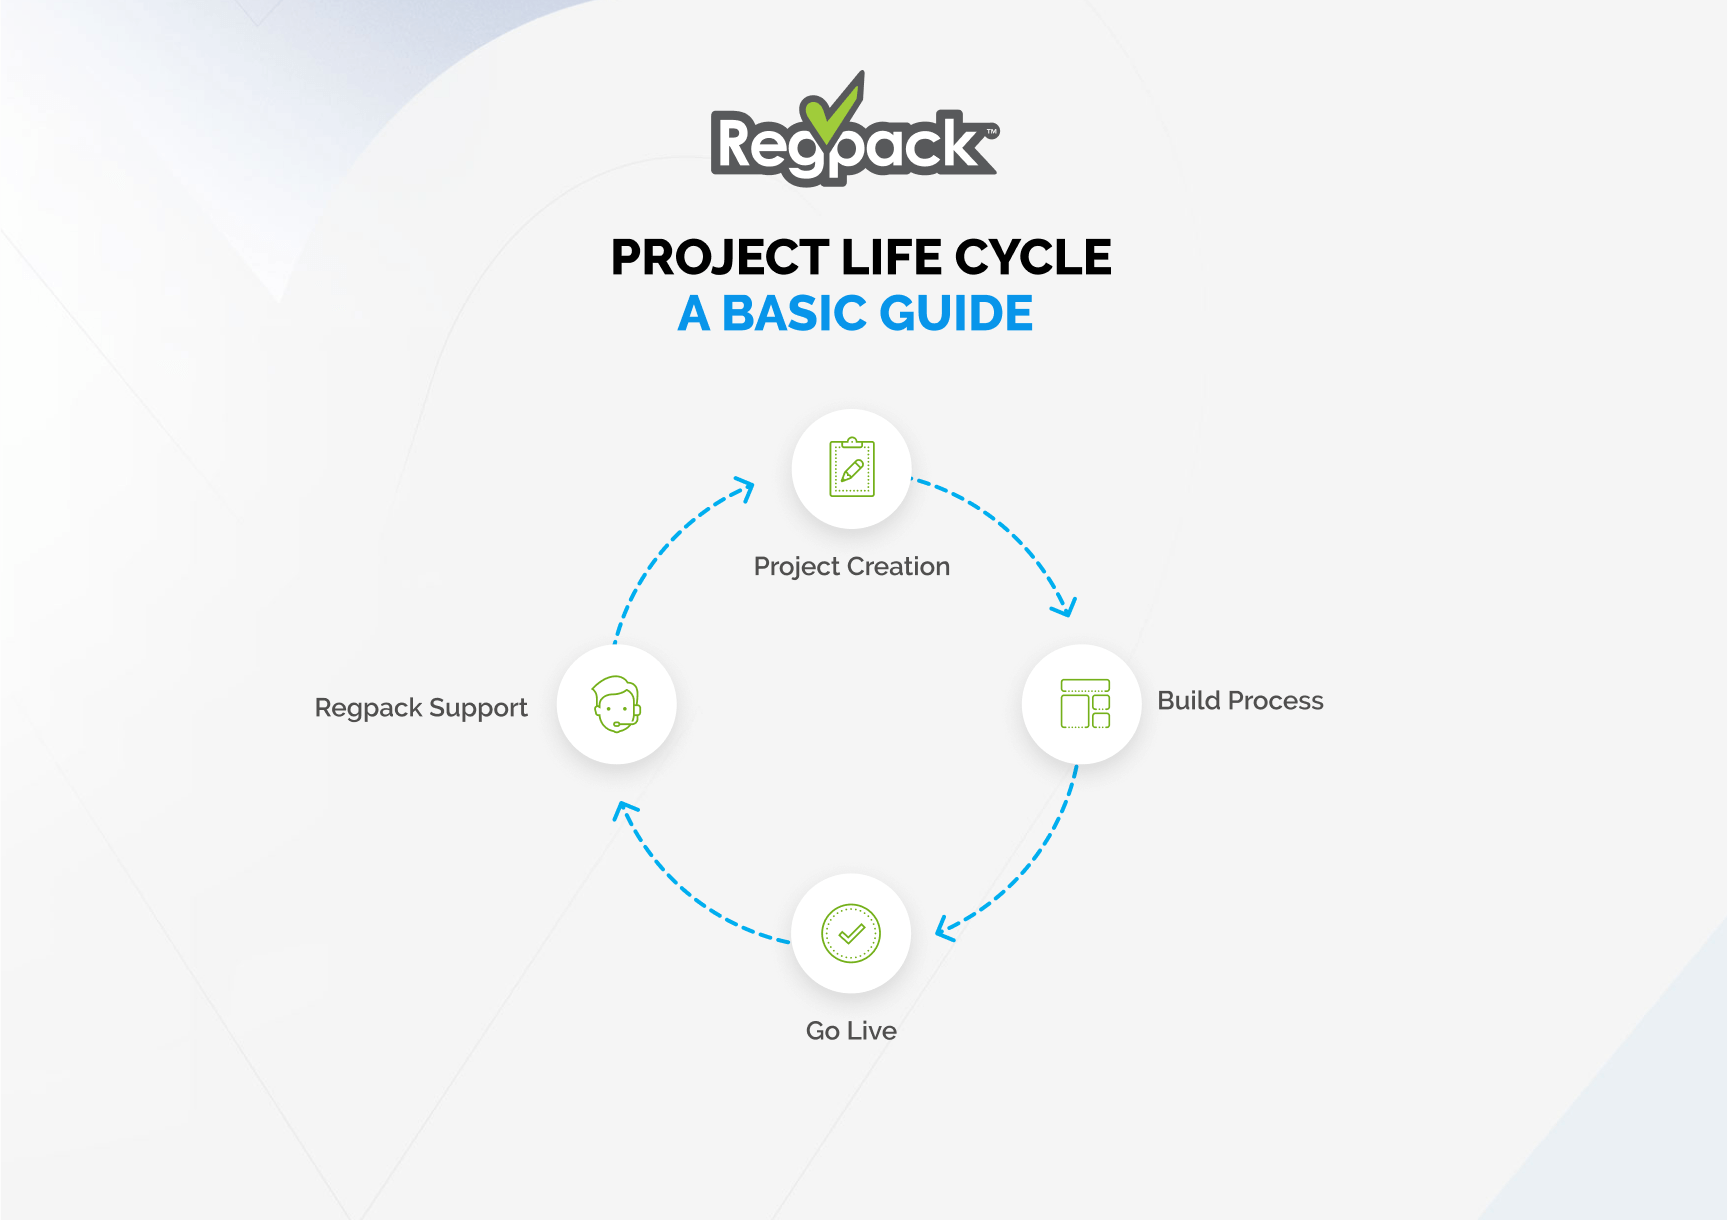 regpack project life cycle